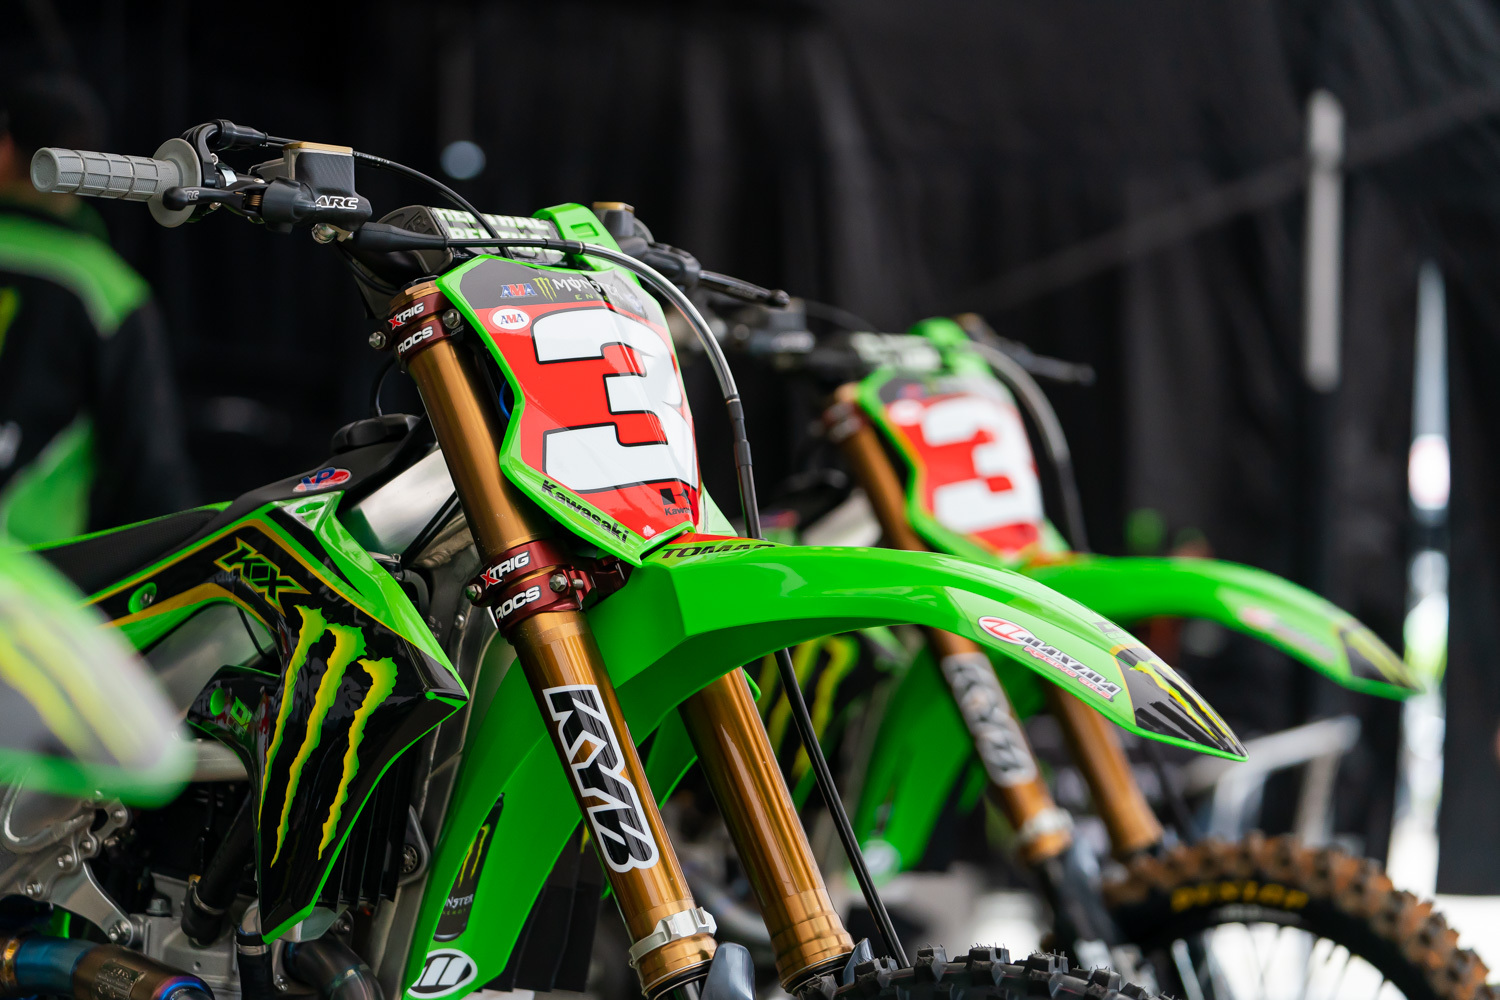 2020-ARLINGTON-SUPERCROSS_KICKSTART_0028